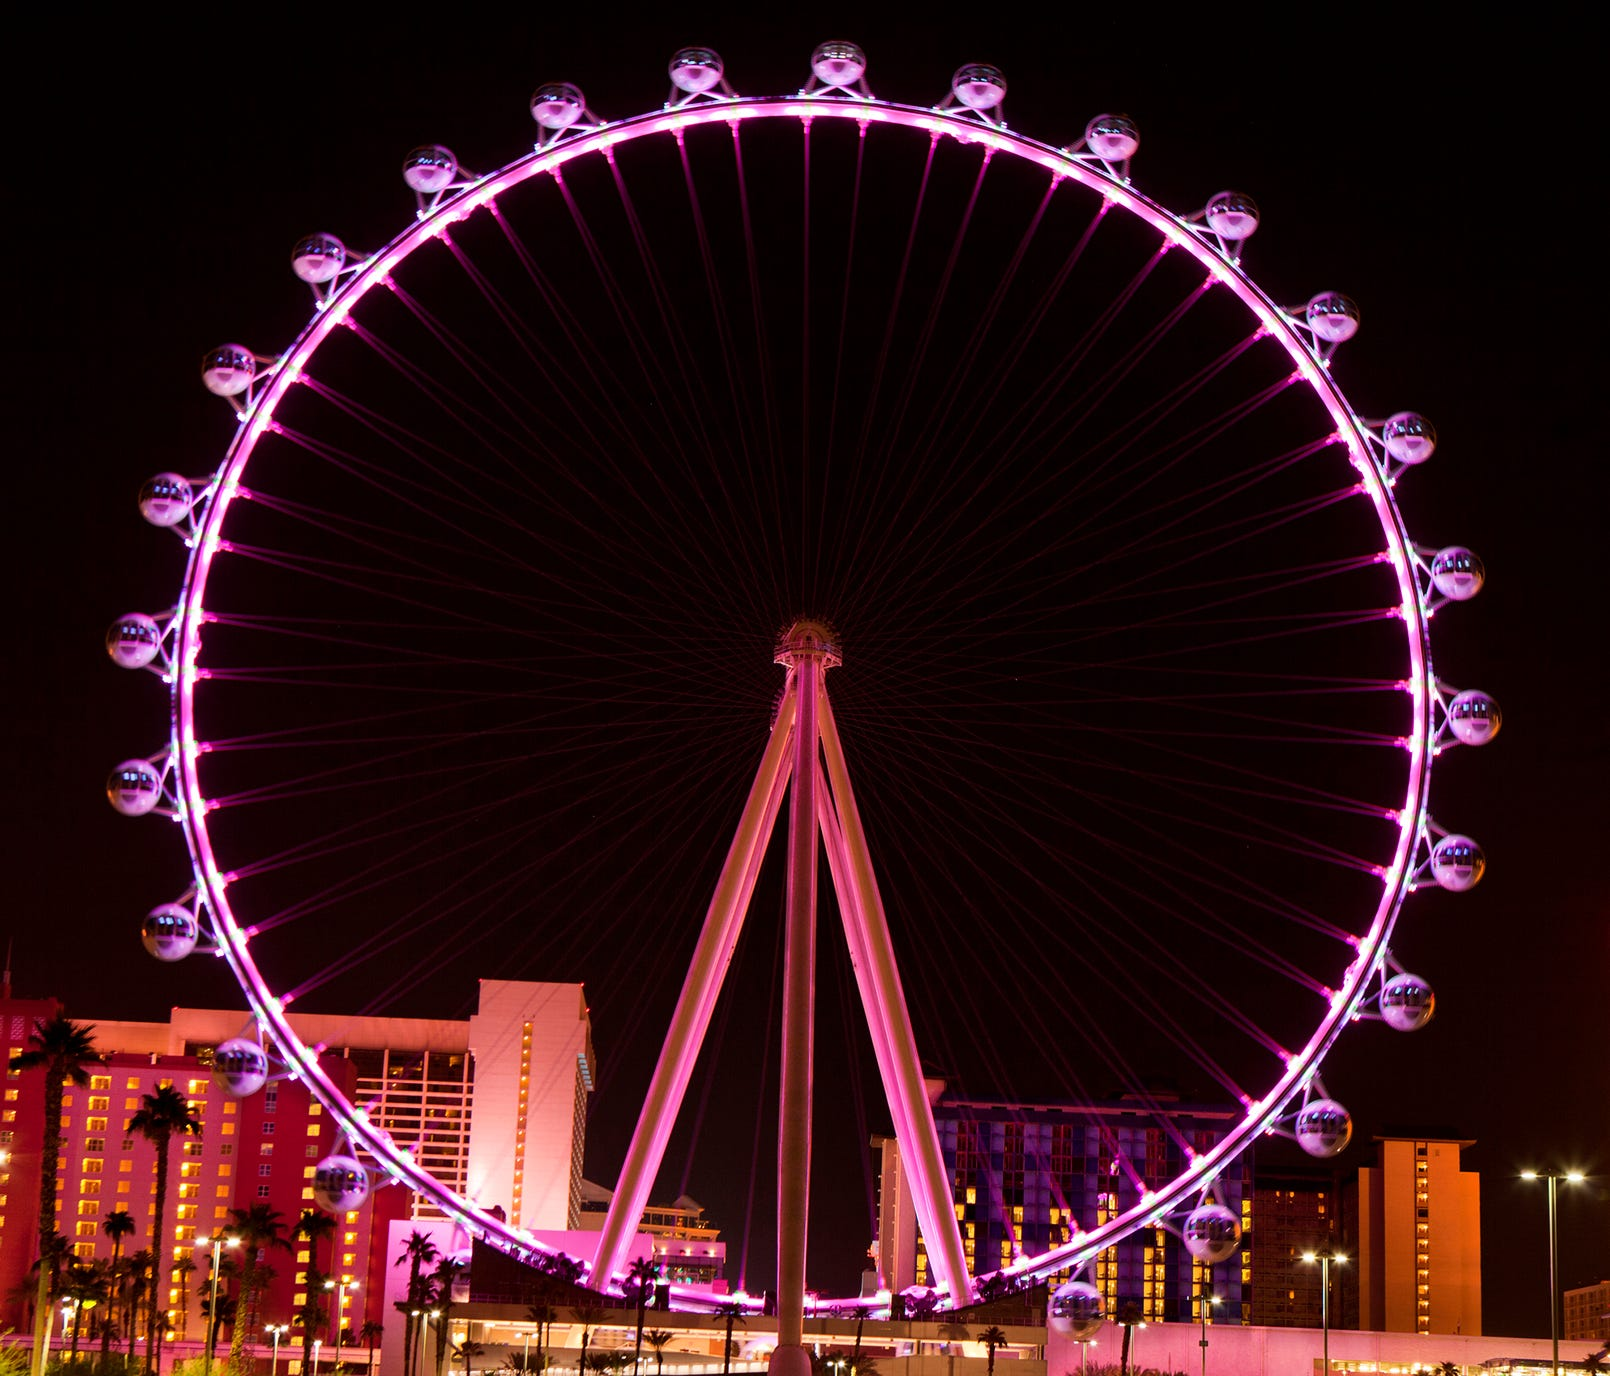 Nevada: High Roller  Price: $18 for an adult ticket during the day  Location: Las Vegas  For $18 you can ride the world's tallest observation wheel — basically just a massive ferris wheel. Ride at night to see the city lights in all their glory.